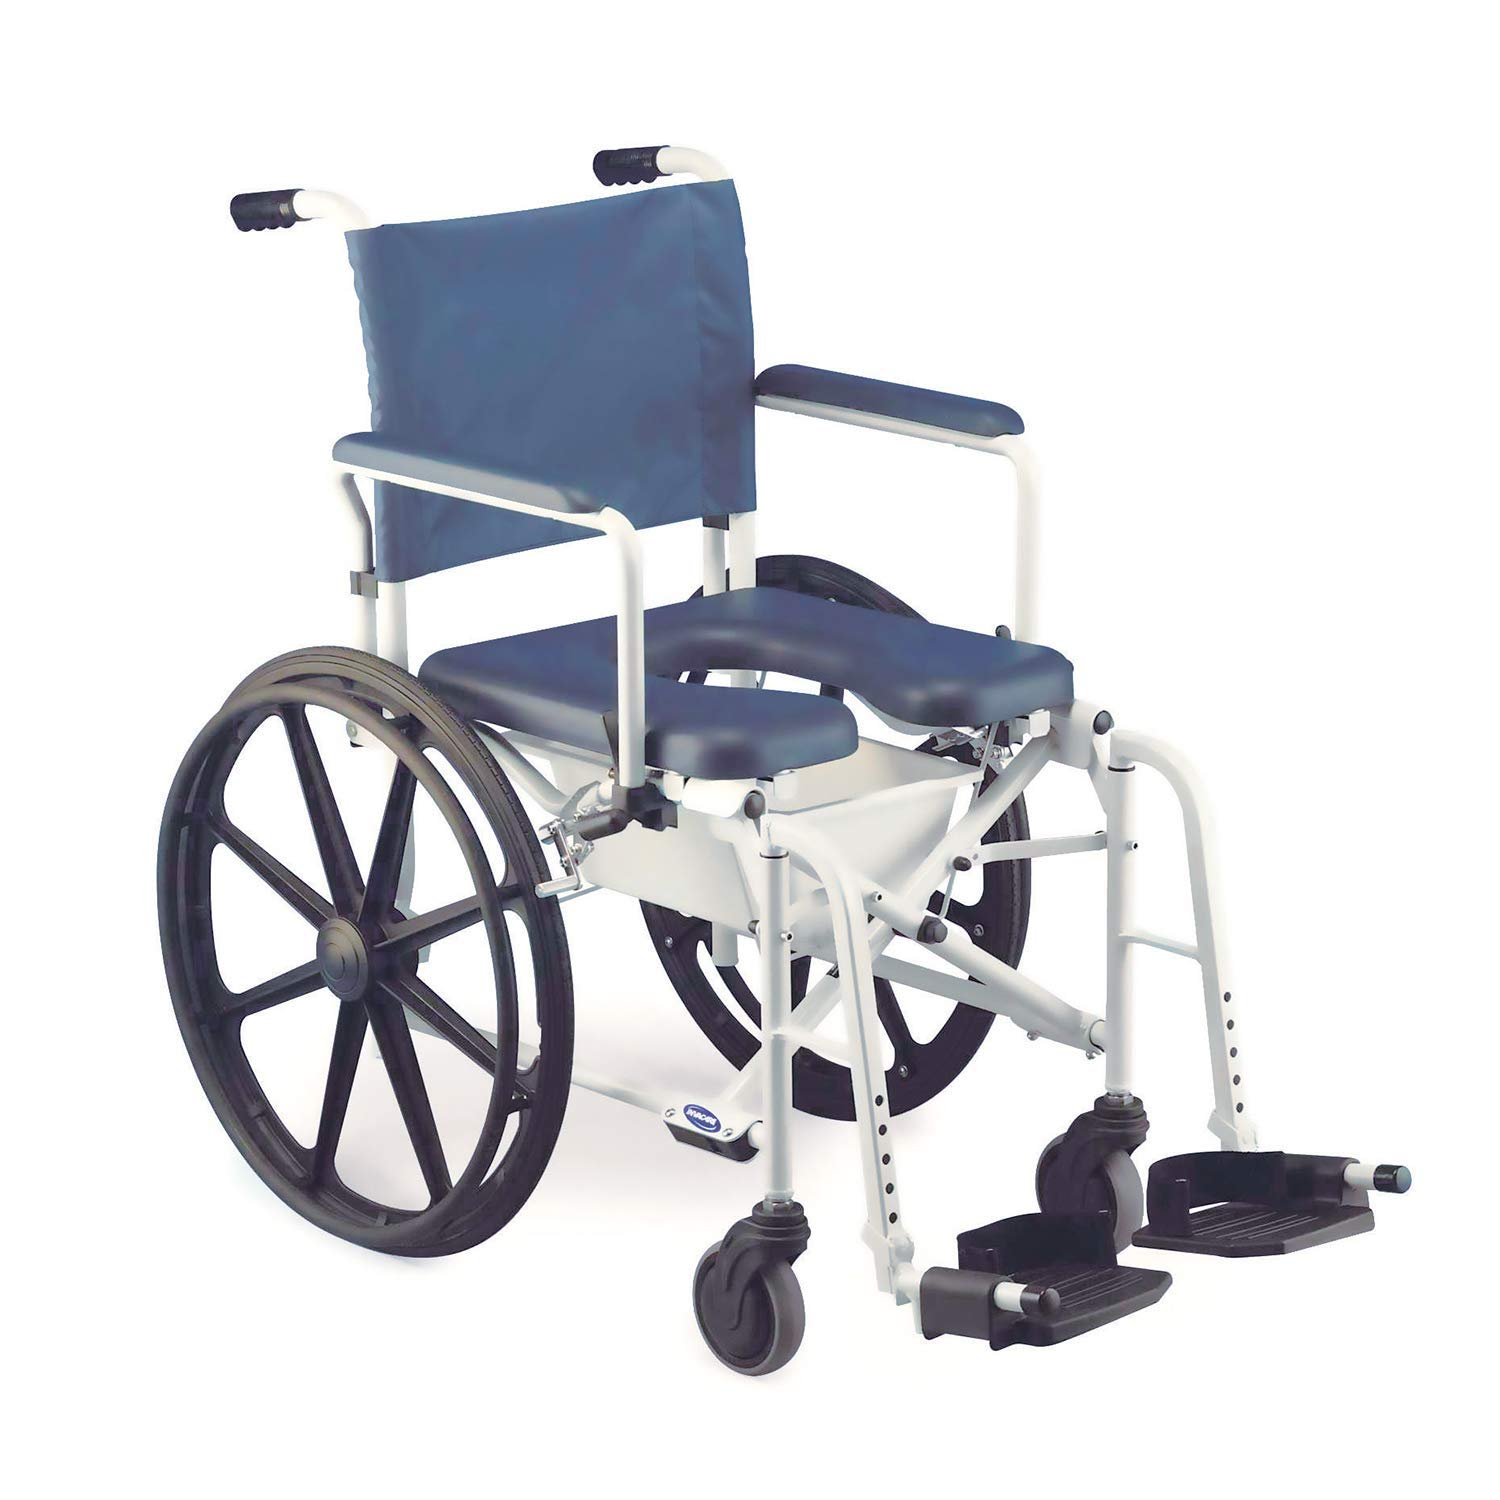 Invacare Mariner Rehab Shower Wheelchair with Commode Opening, 16'' Seat Width, 300 lb. Weight Capacity, 6795